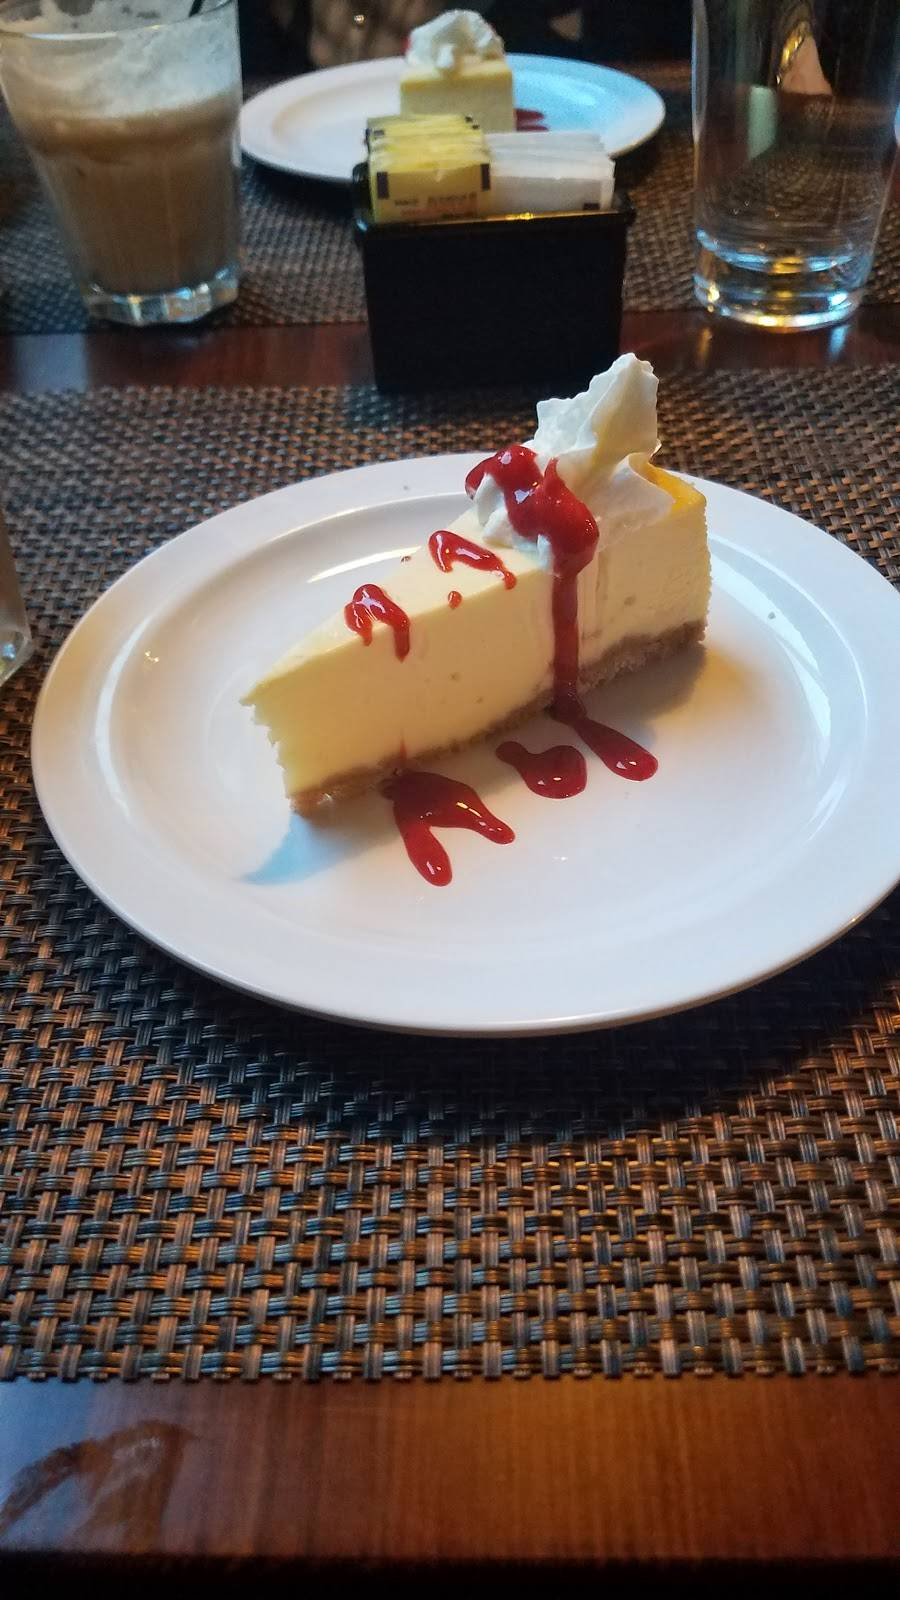 Dolce Osteria | restaurant | 1710 Kenilworth Ave, Charlotte, NC 28203, USA | 7043327525 OR +1 704-332-7525